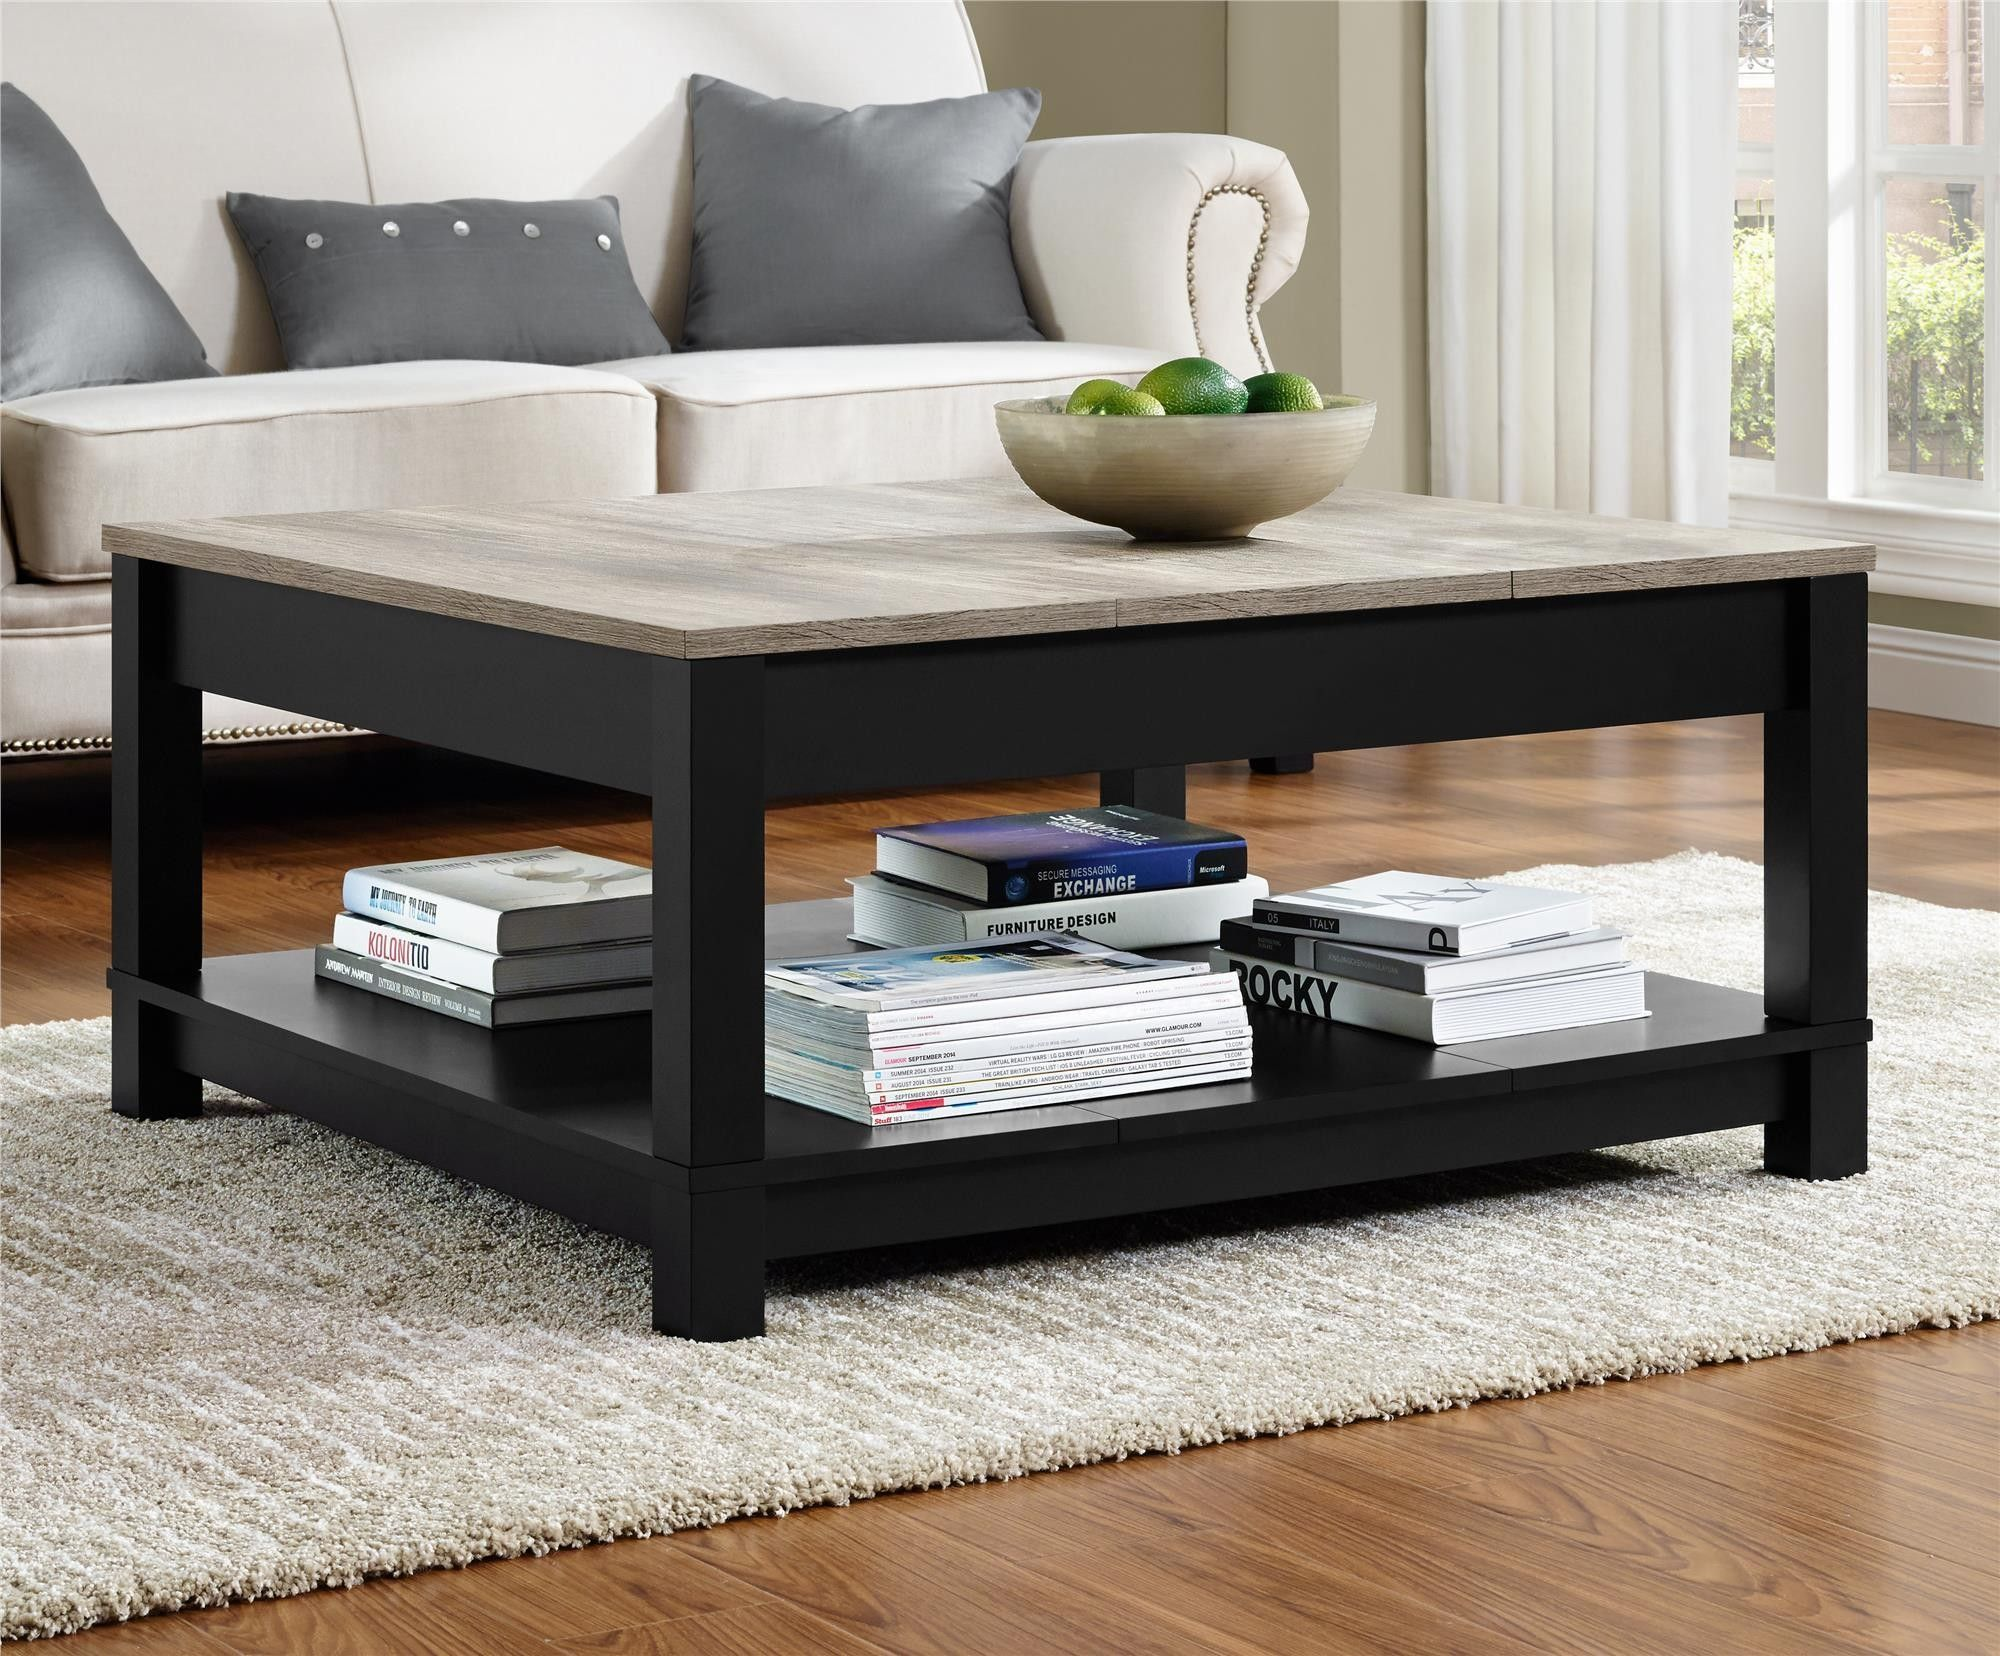 Carver Coffee Table Black Distressed Gray Oak Coffee Table